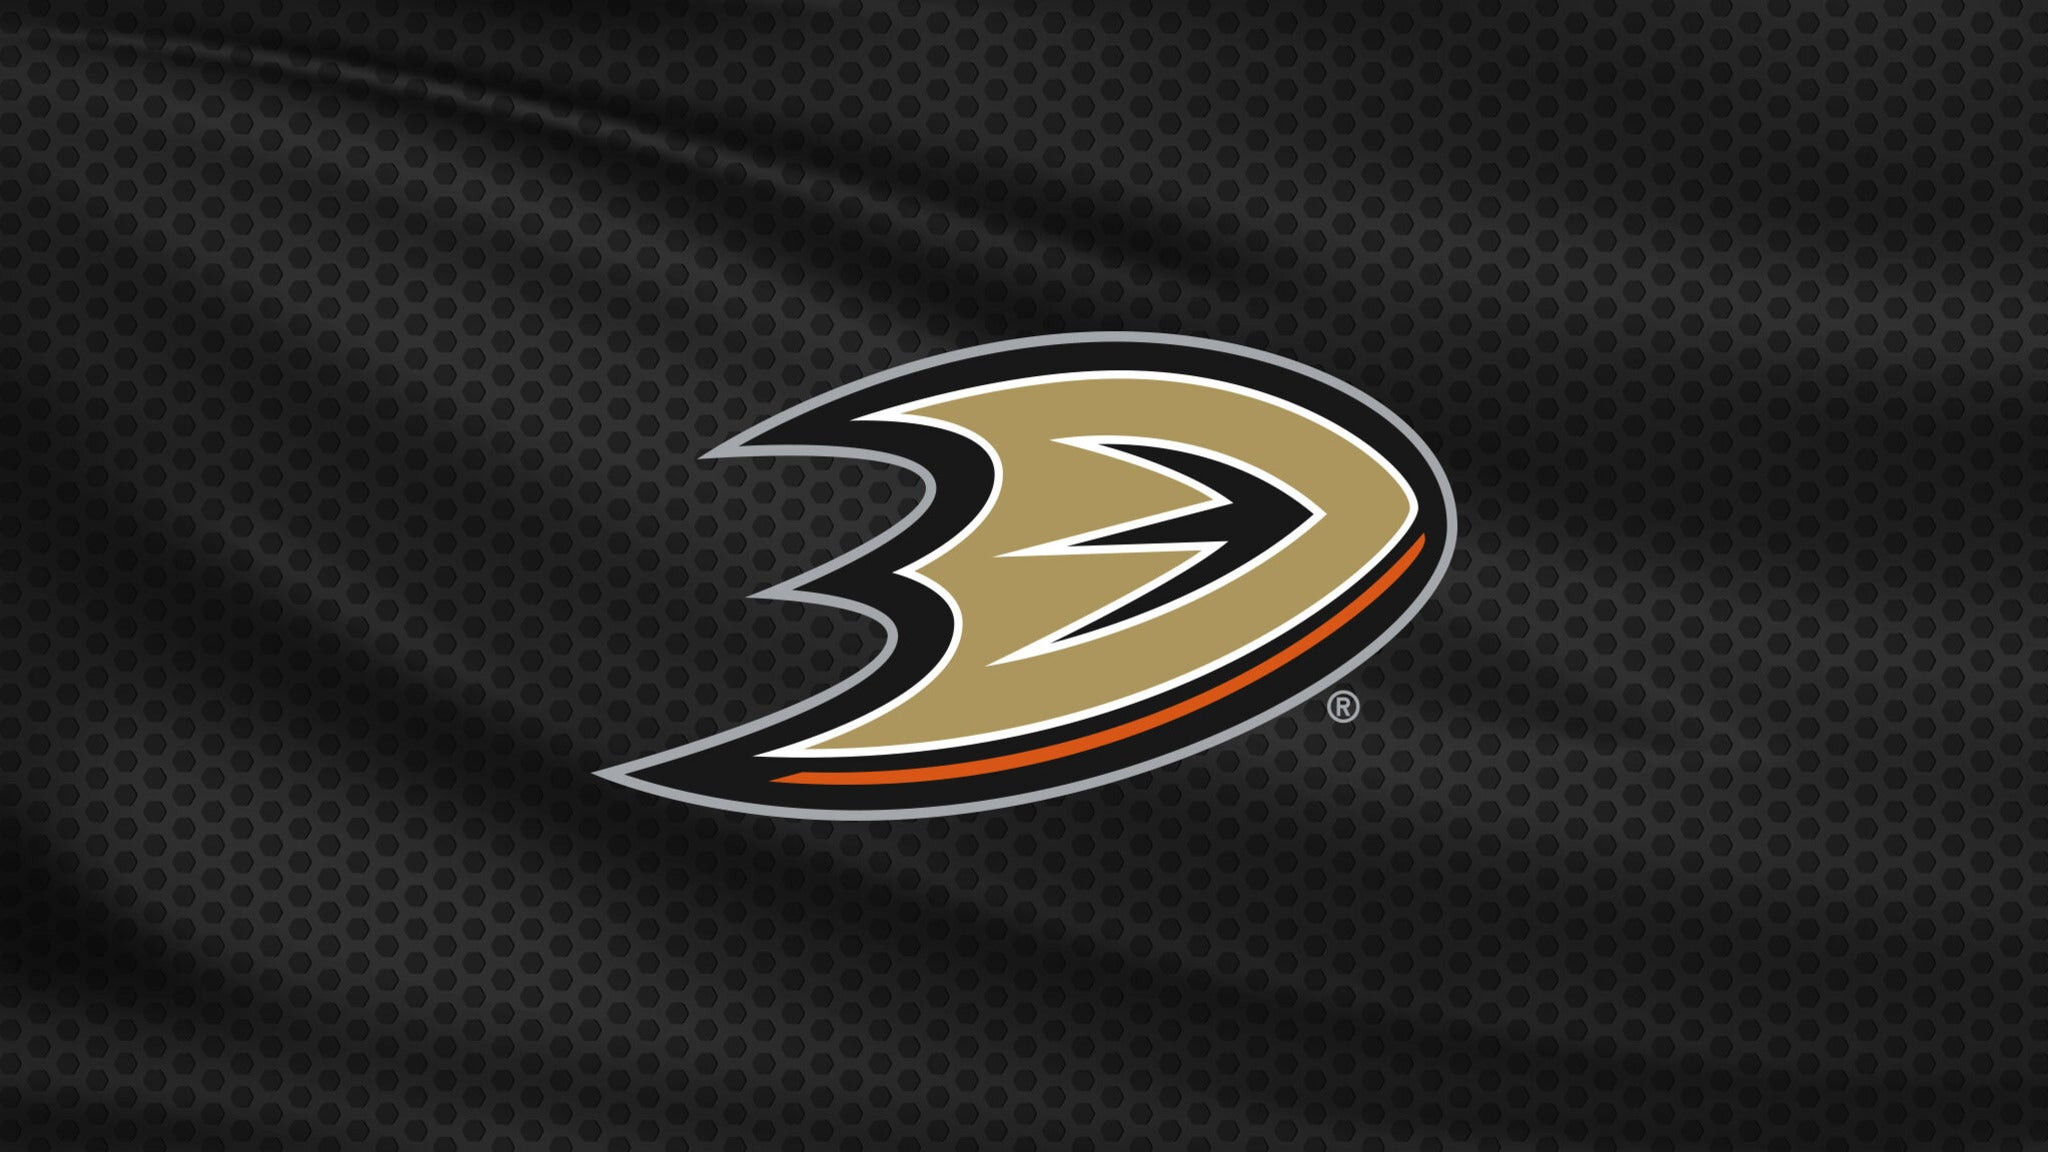 Anaheim Ducks vs. Los Angeles Kings at Honda Center